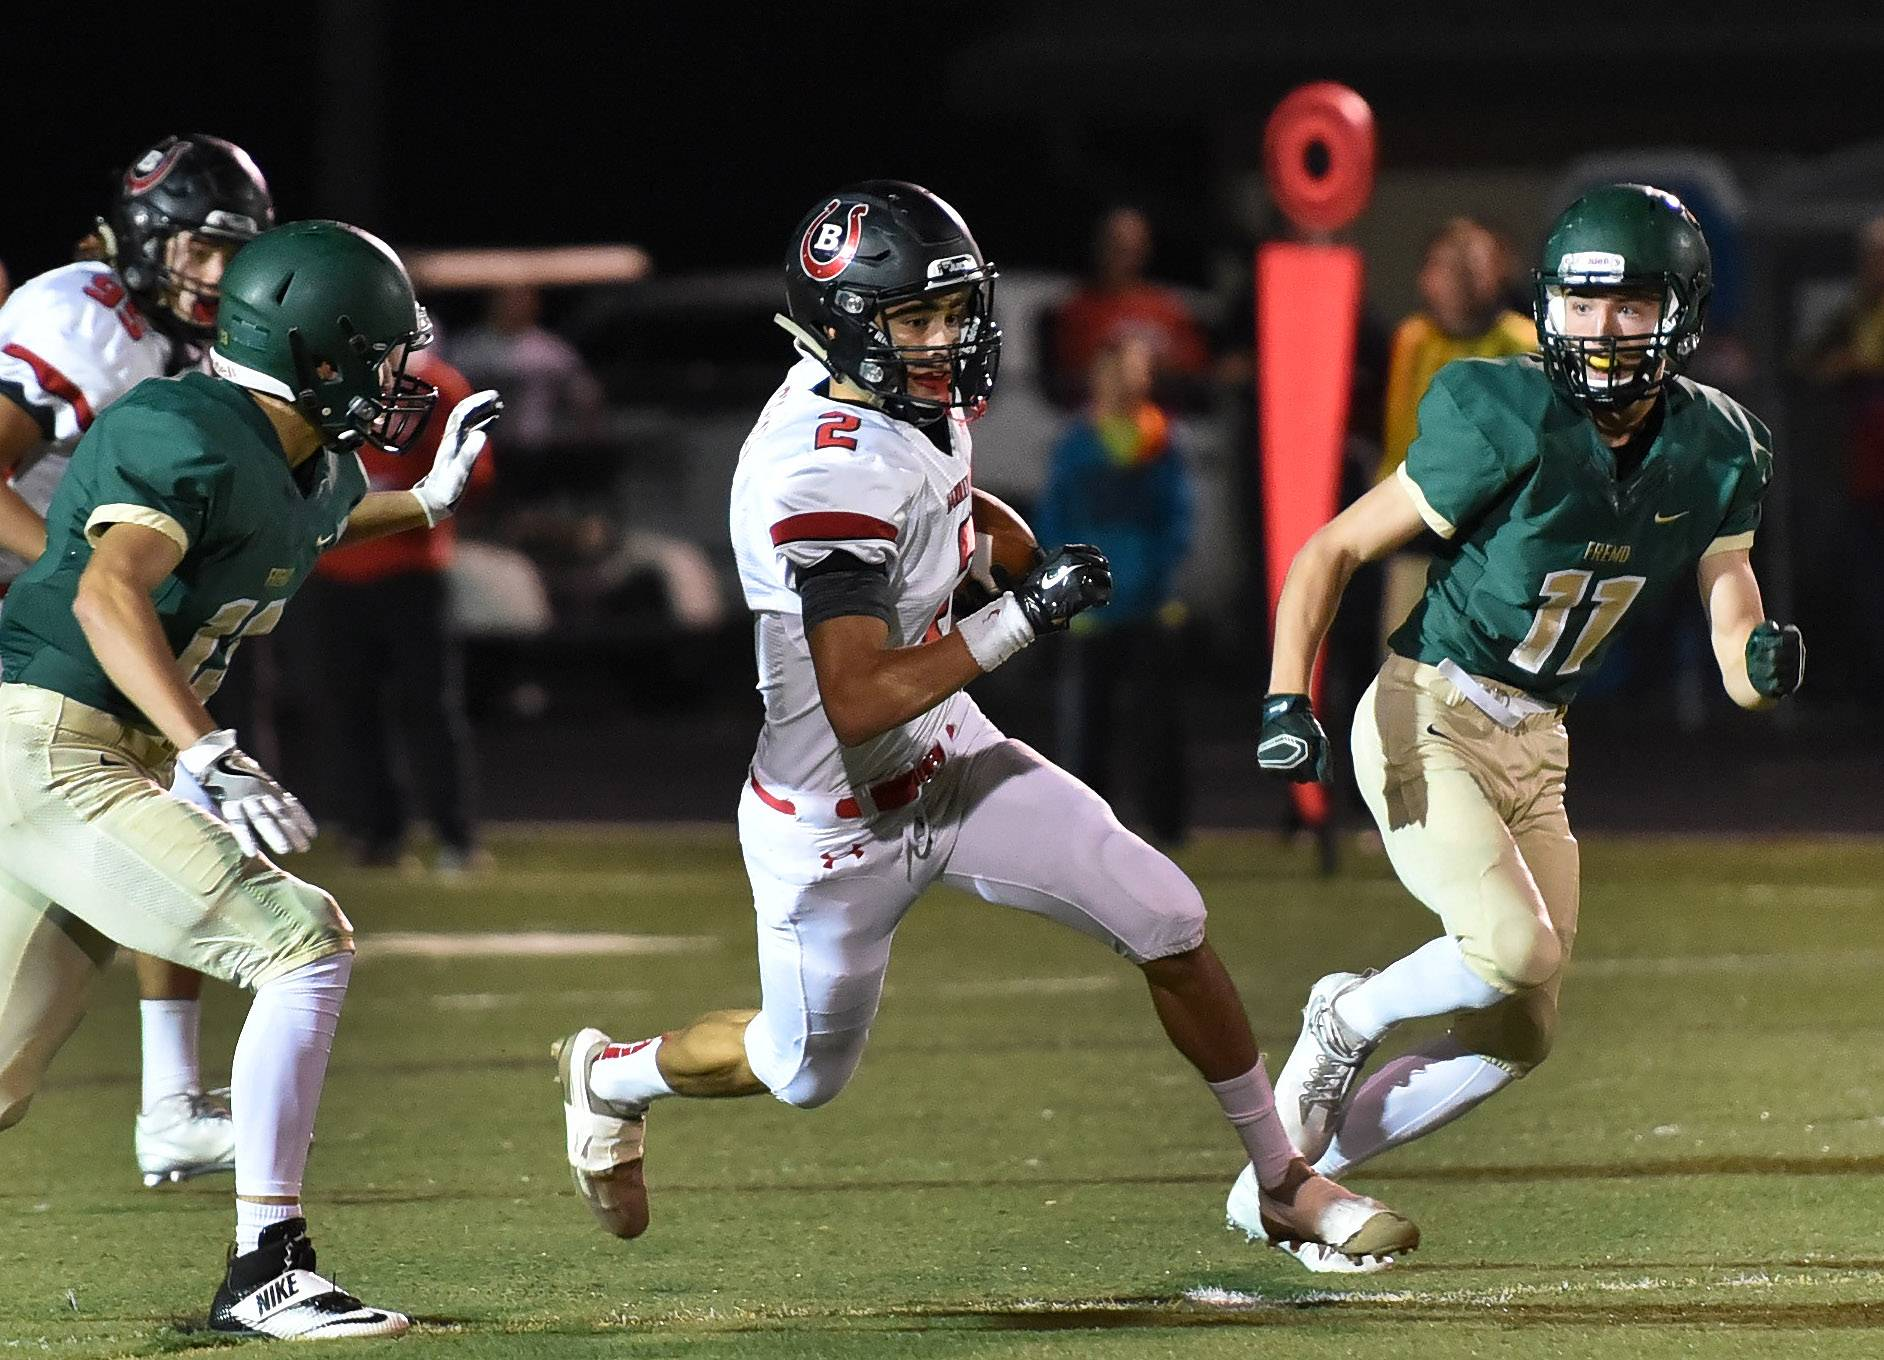 Barrington's Louis Cossio eludes Fremd tacklers in first-half action at Fremd on Friday.